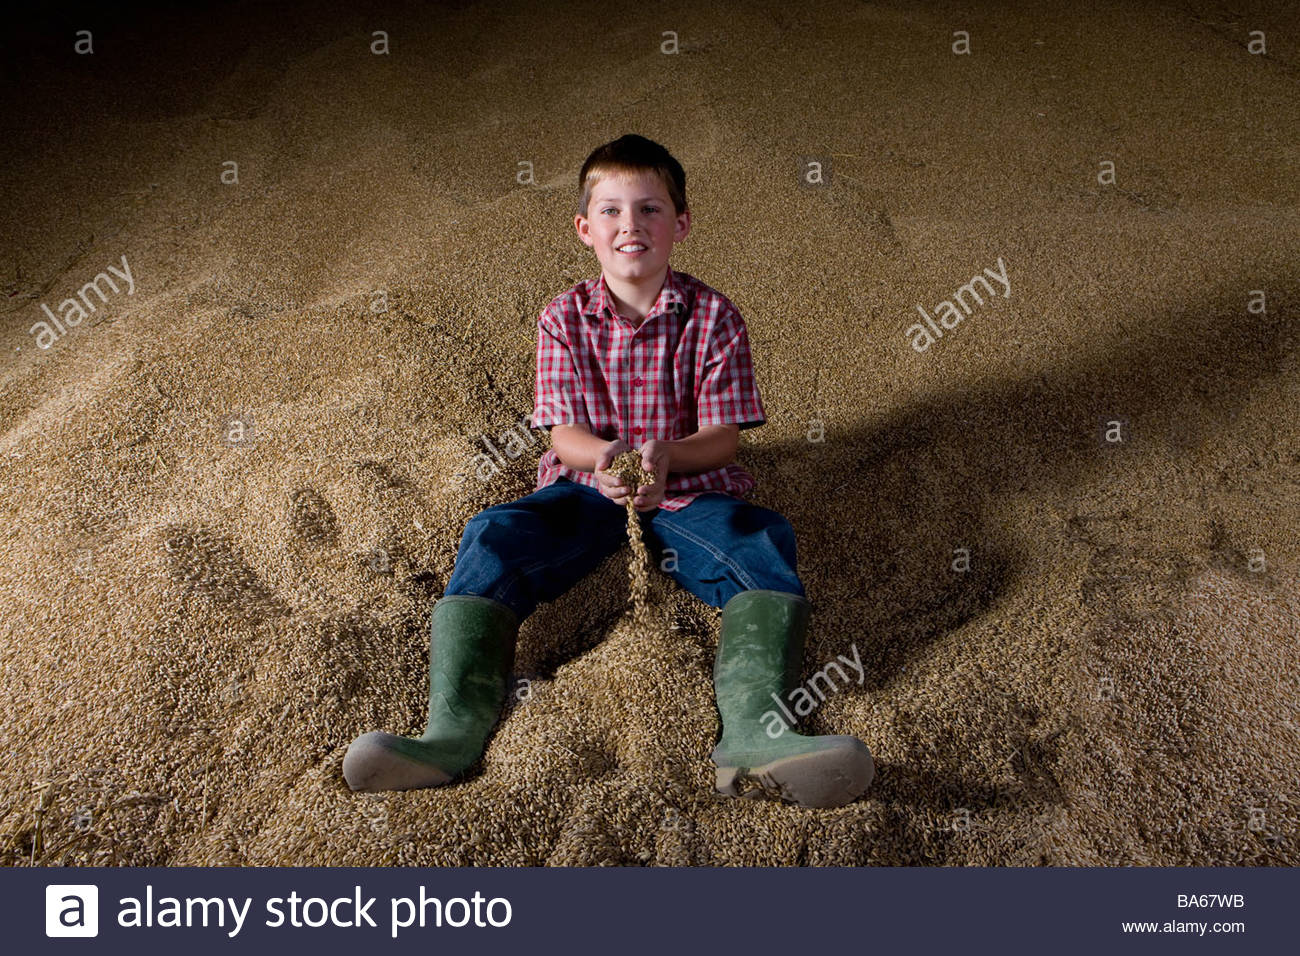 Boy sitting on mound of wheat grains - Stock Image